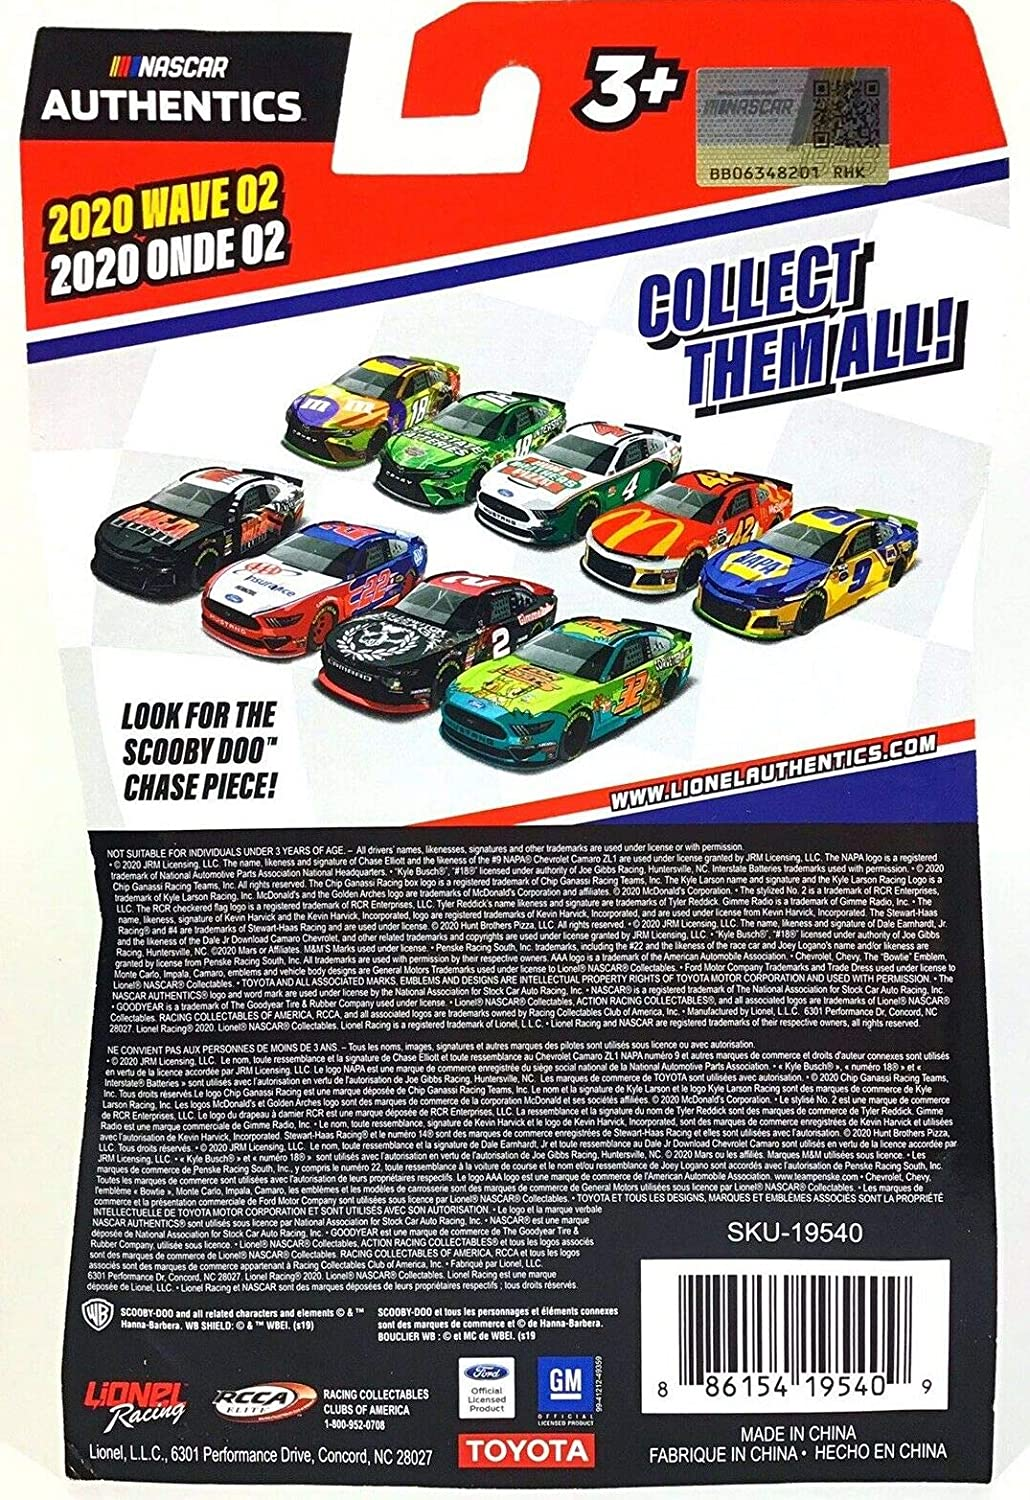 kings dugout Joey Logano #22 NASCAR Authentics AAA Insurance 1//64 Scale Die-Cast 2020 Wave 2 Release.